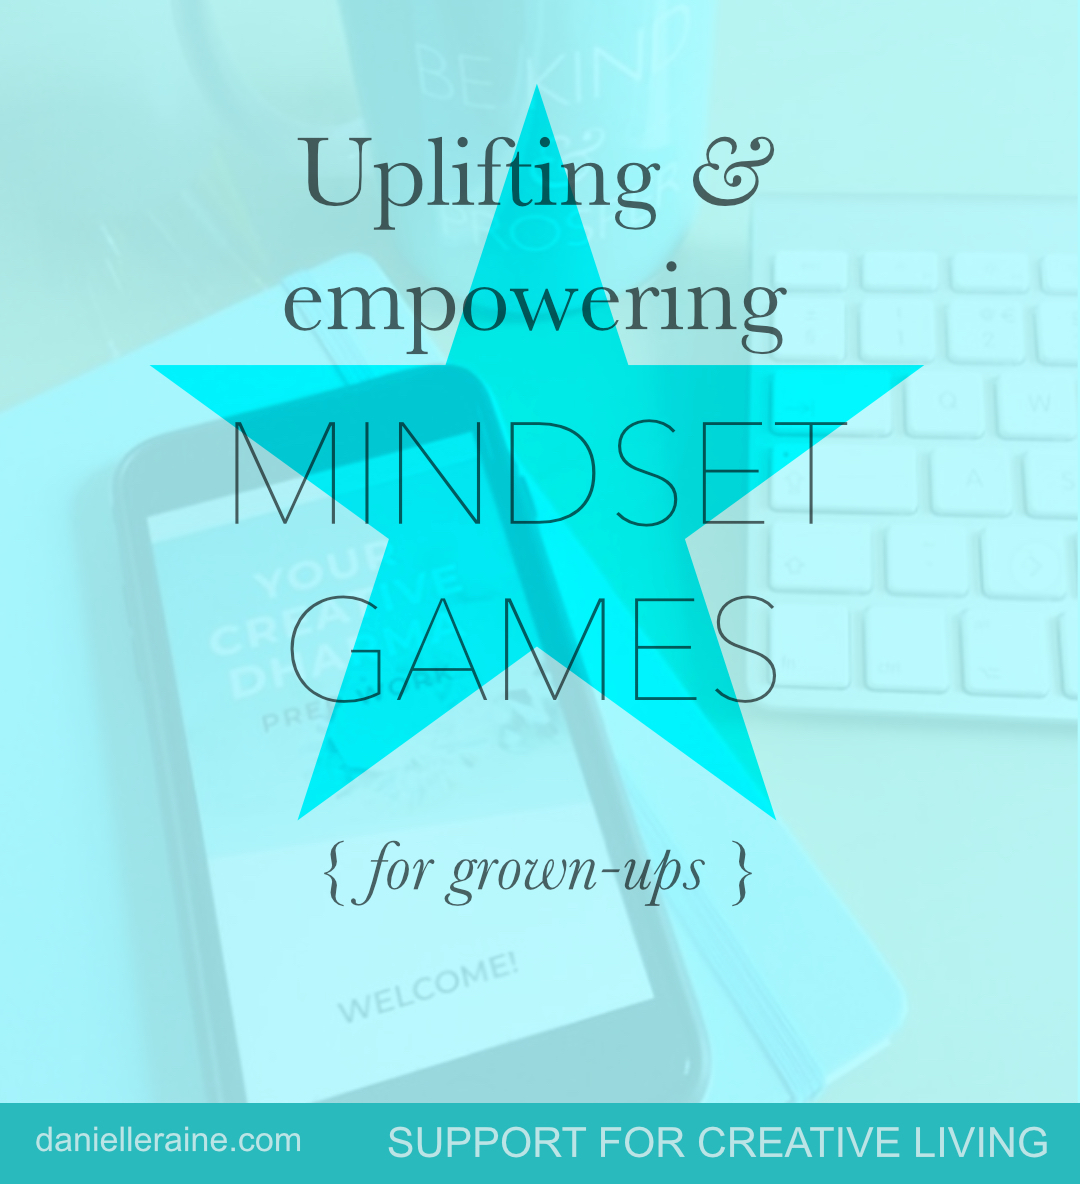 Uplifting empowering mindset games for grown ups